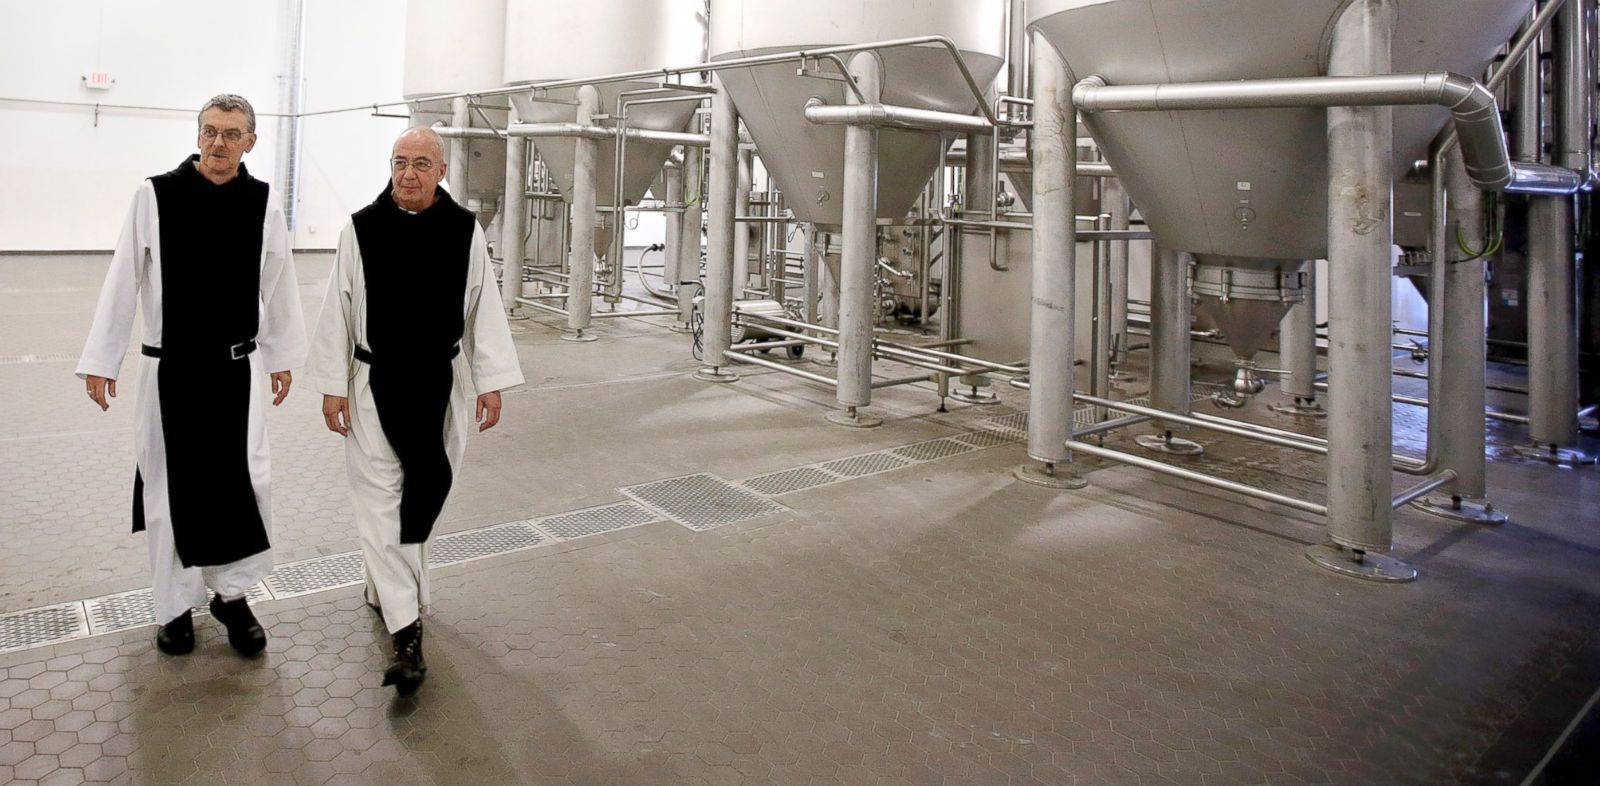 PHOTO: Father Damion, abbot at St. Josephs Trappist Abbey and Spencer Brewery director Father Isaac walk through their new, state-of-the-art facility in Spencer, Mass.